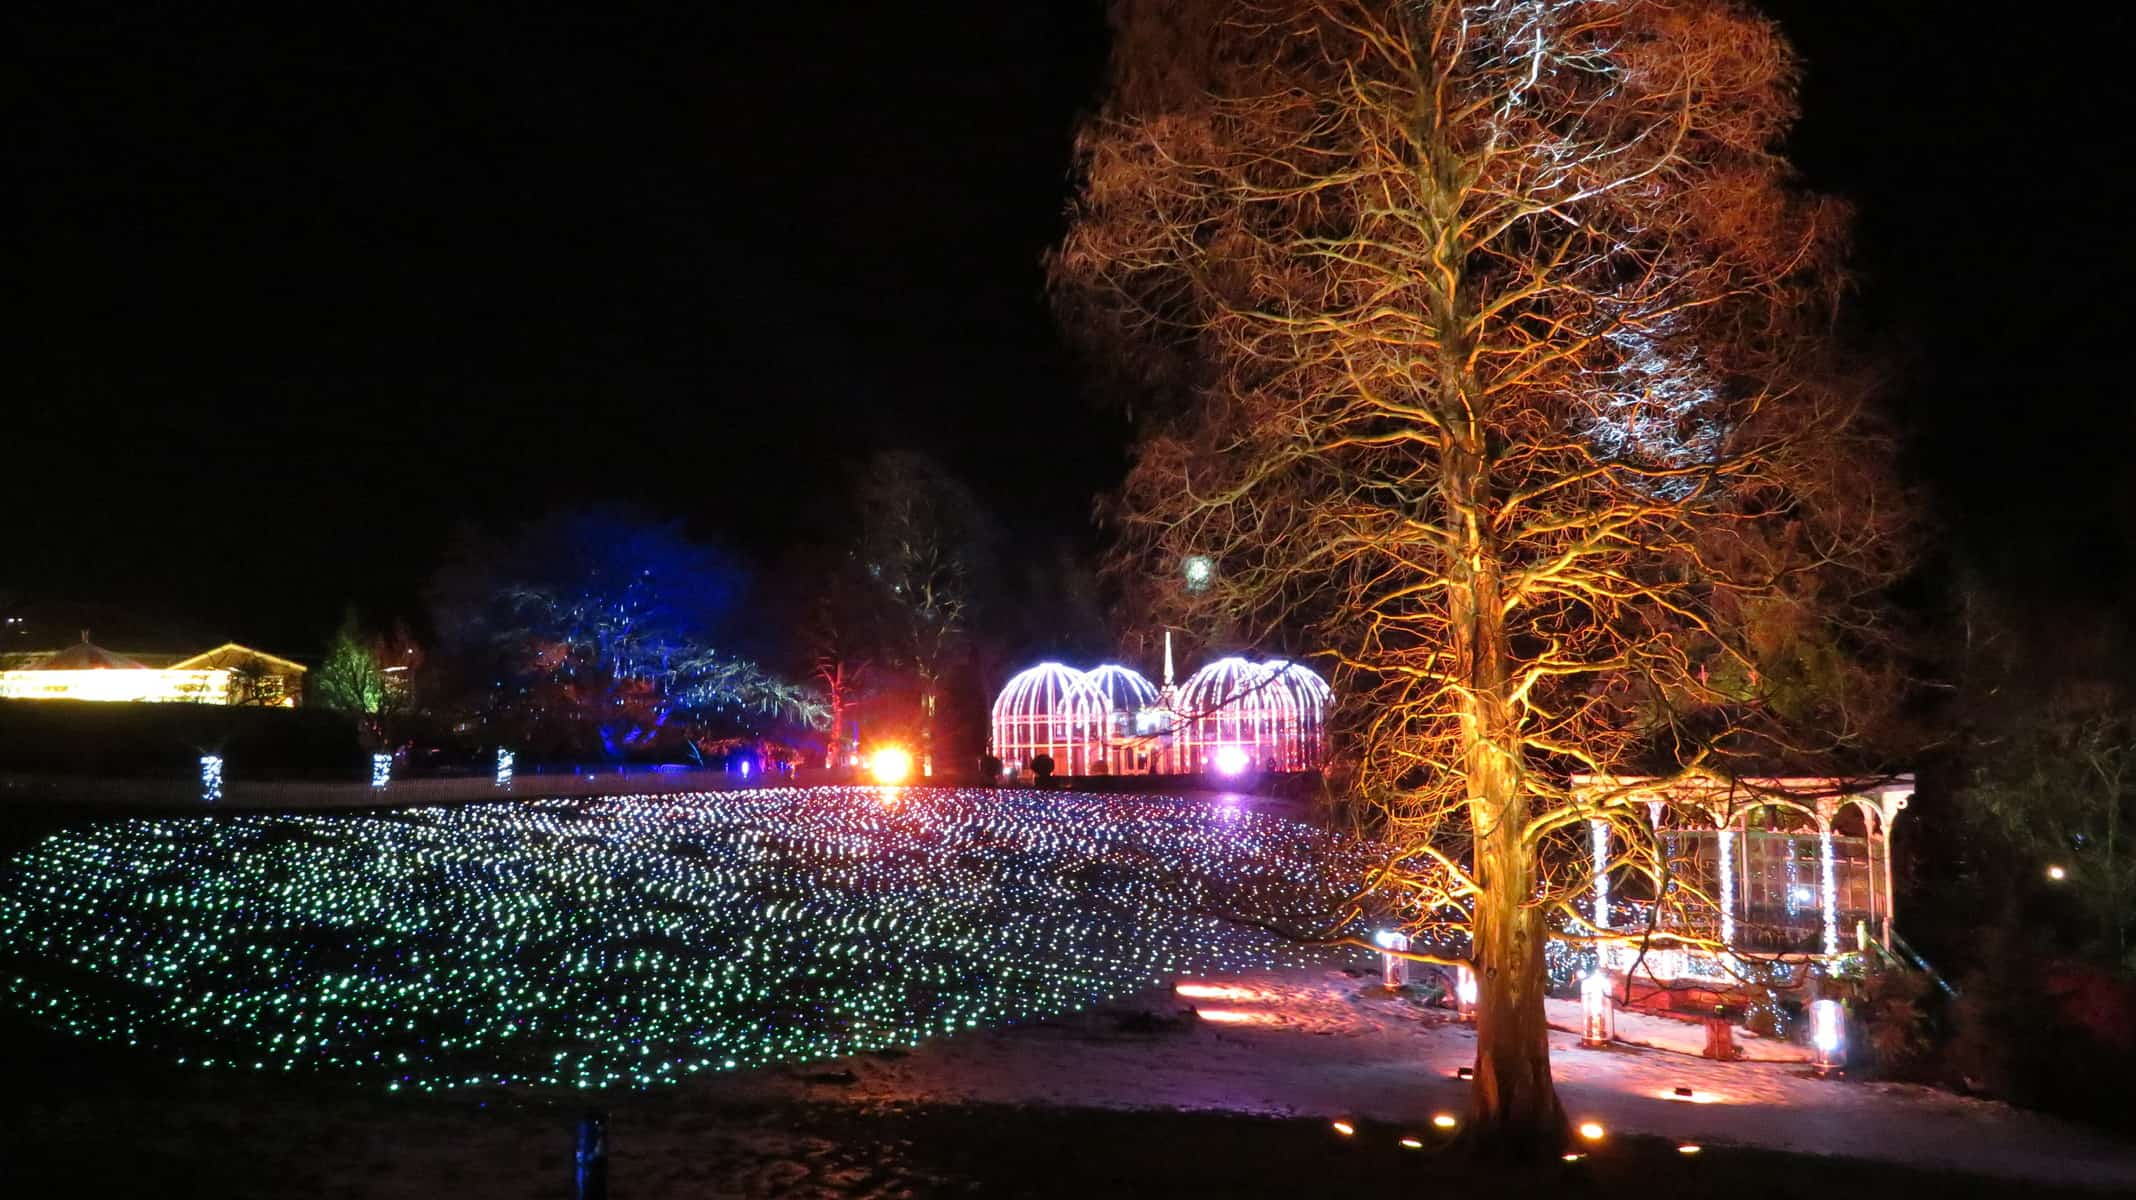 An illuminated lawn with tree and several structures also decked in lights